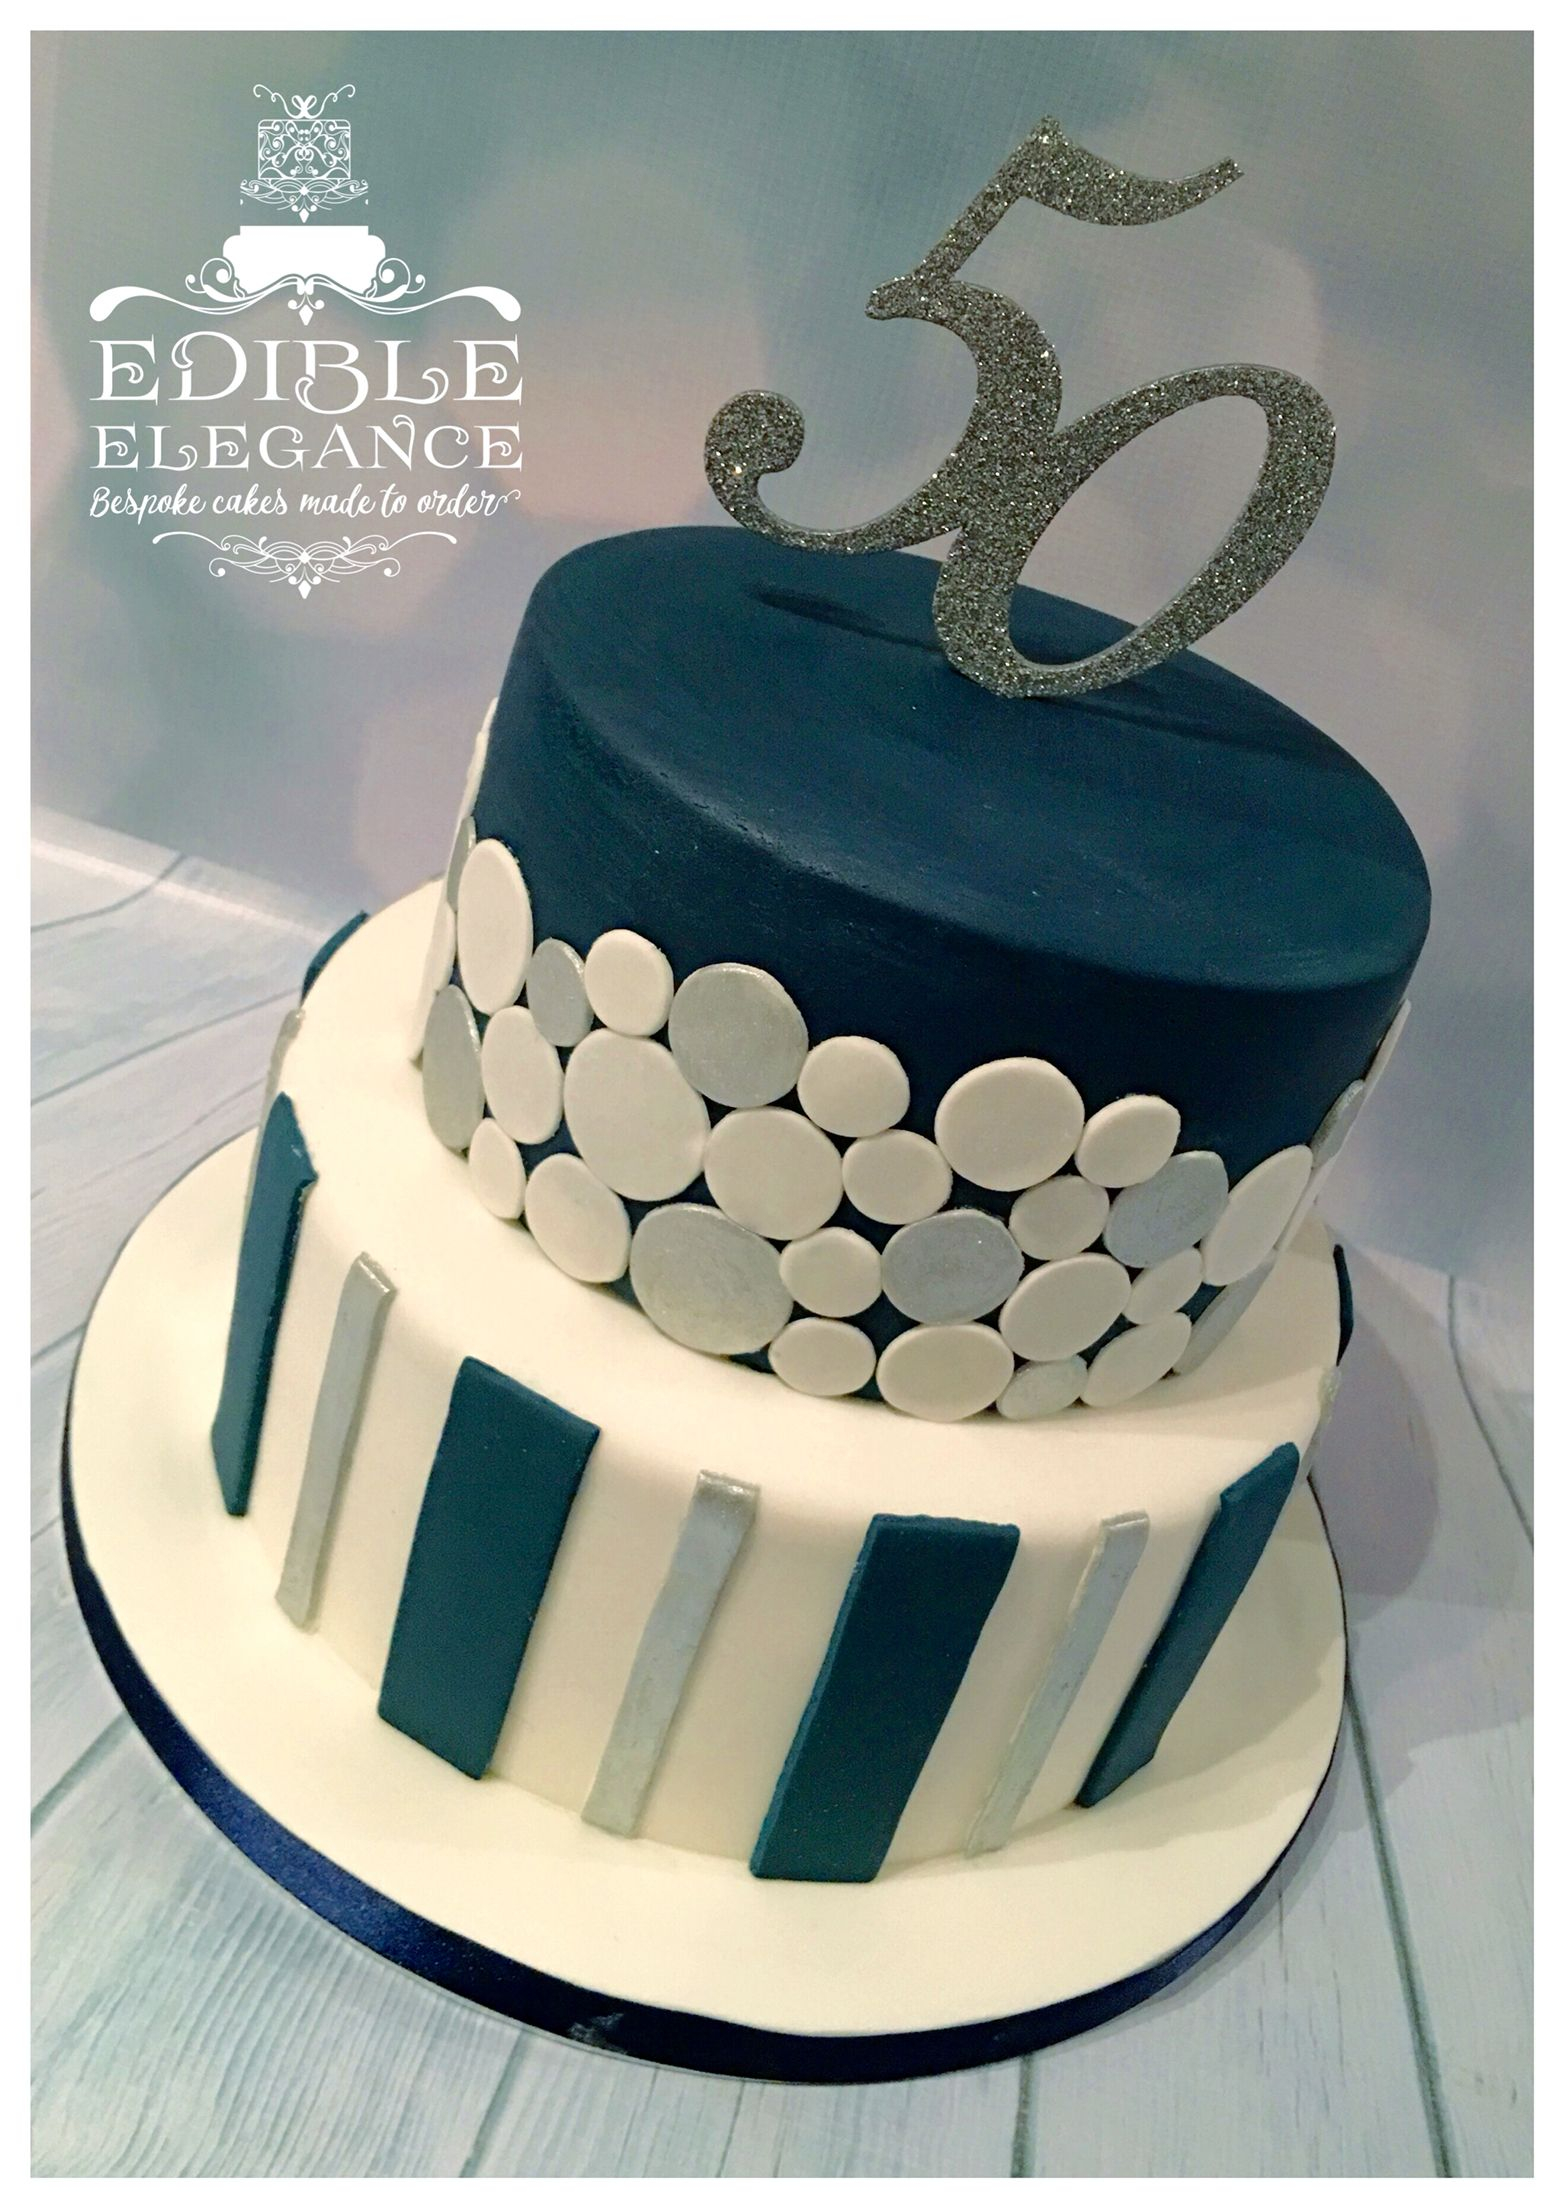 Birthday Cake Ideas For Men 50th Birthday Cake Contemporary Design In Masculine Blue White And